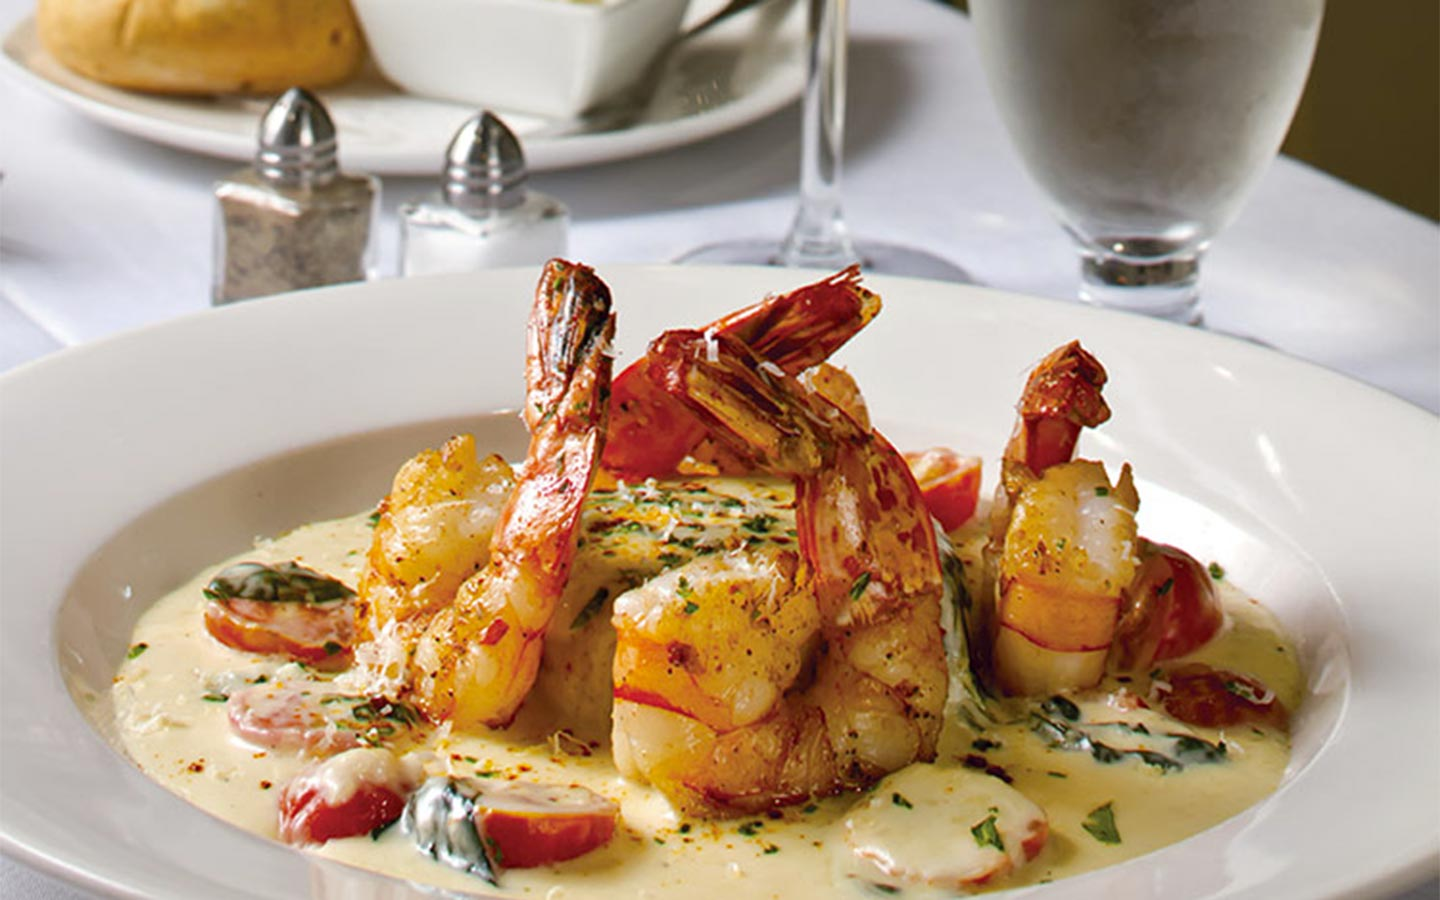 Shrimp in a creamy sauce with basil and tomatoes at our Edenton, NC Restaurant